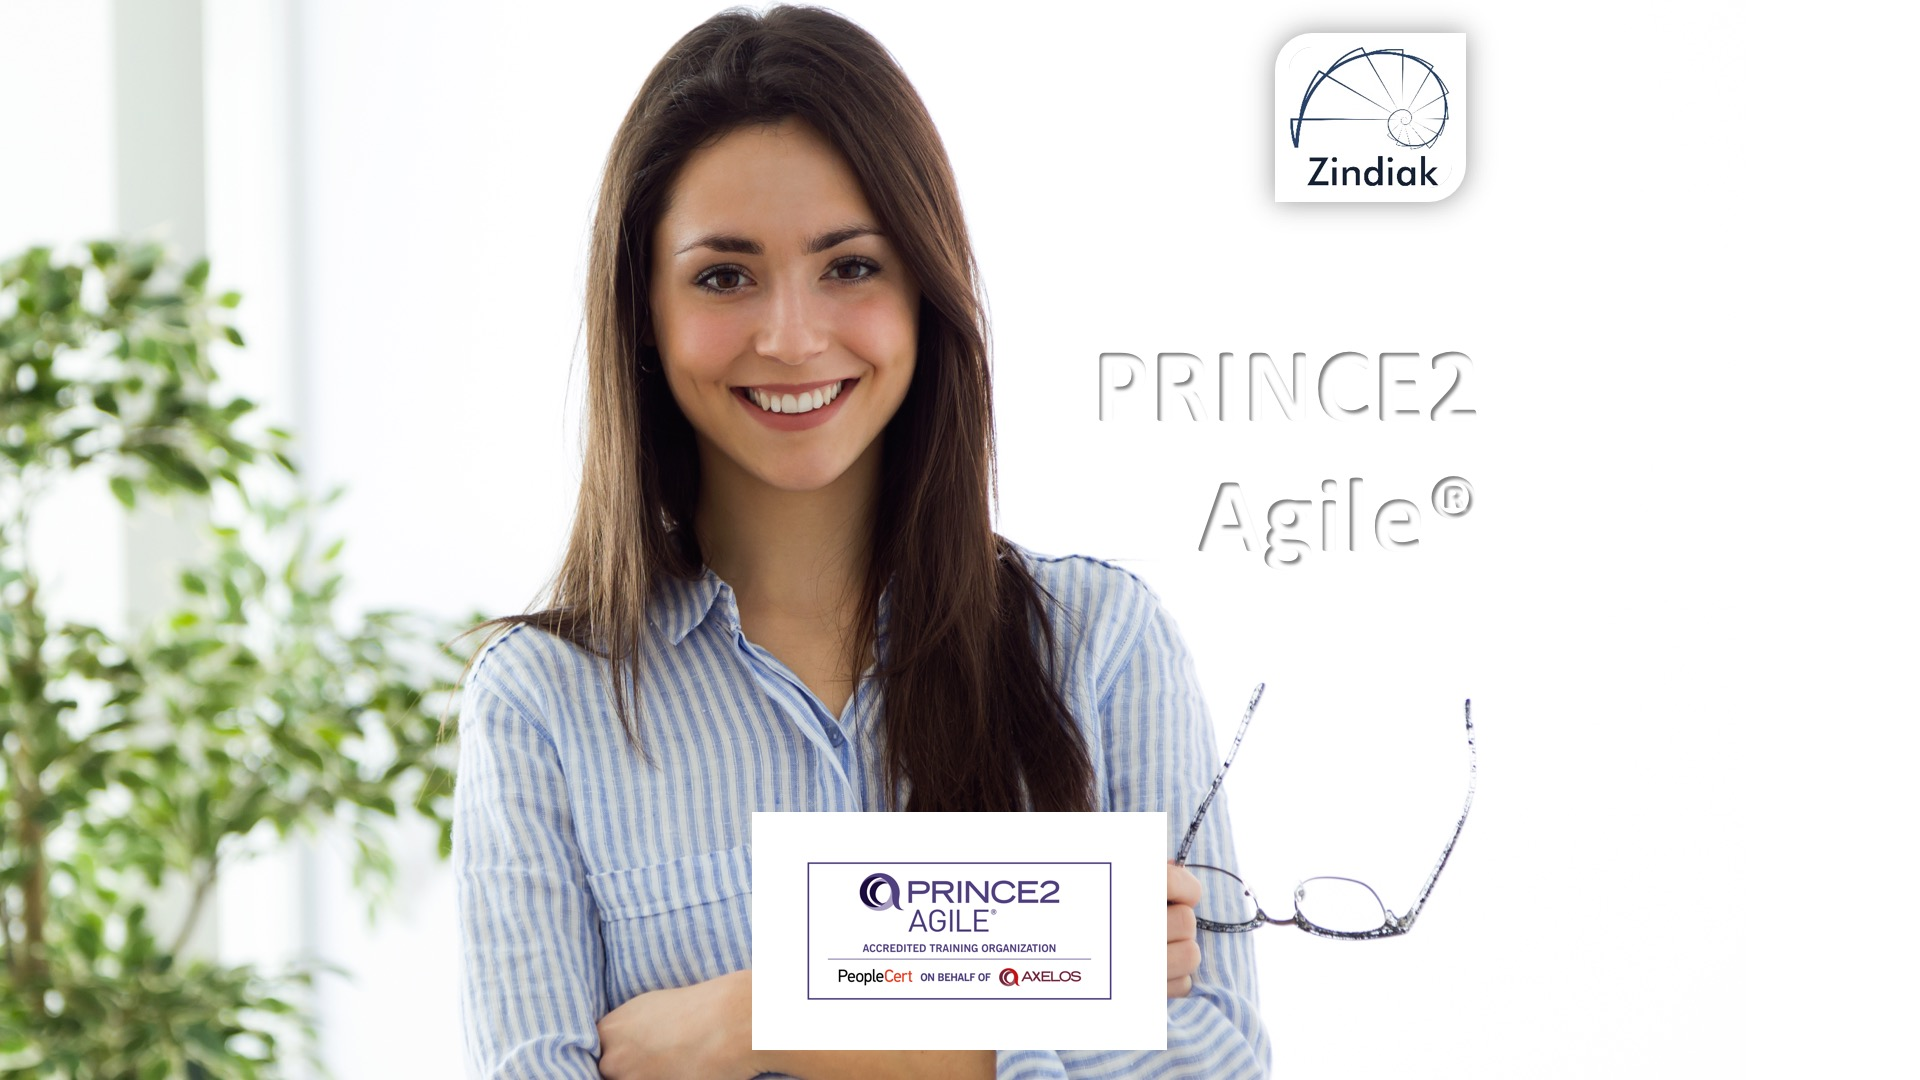 PRINCE2 Agile Foundation and Practitioner (Accredited by PeopleCert / Axelos)